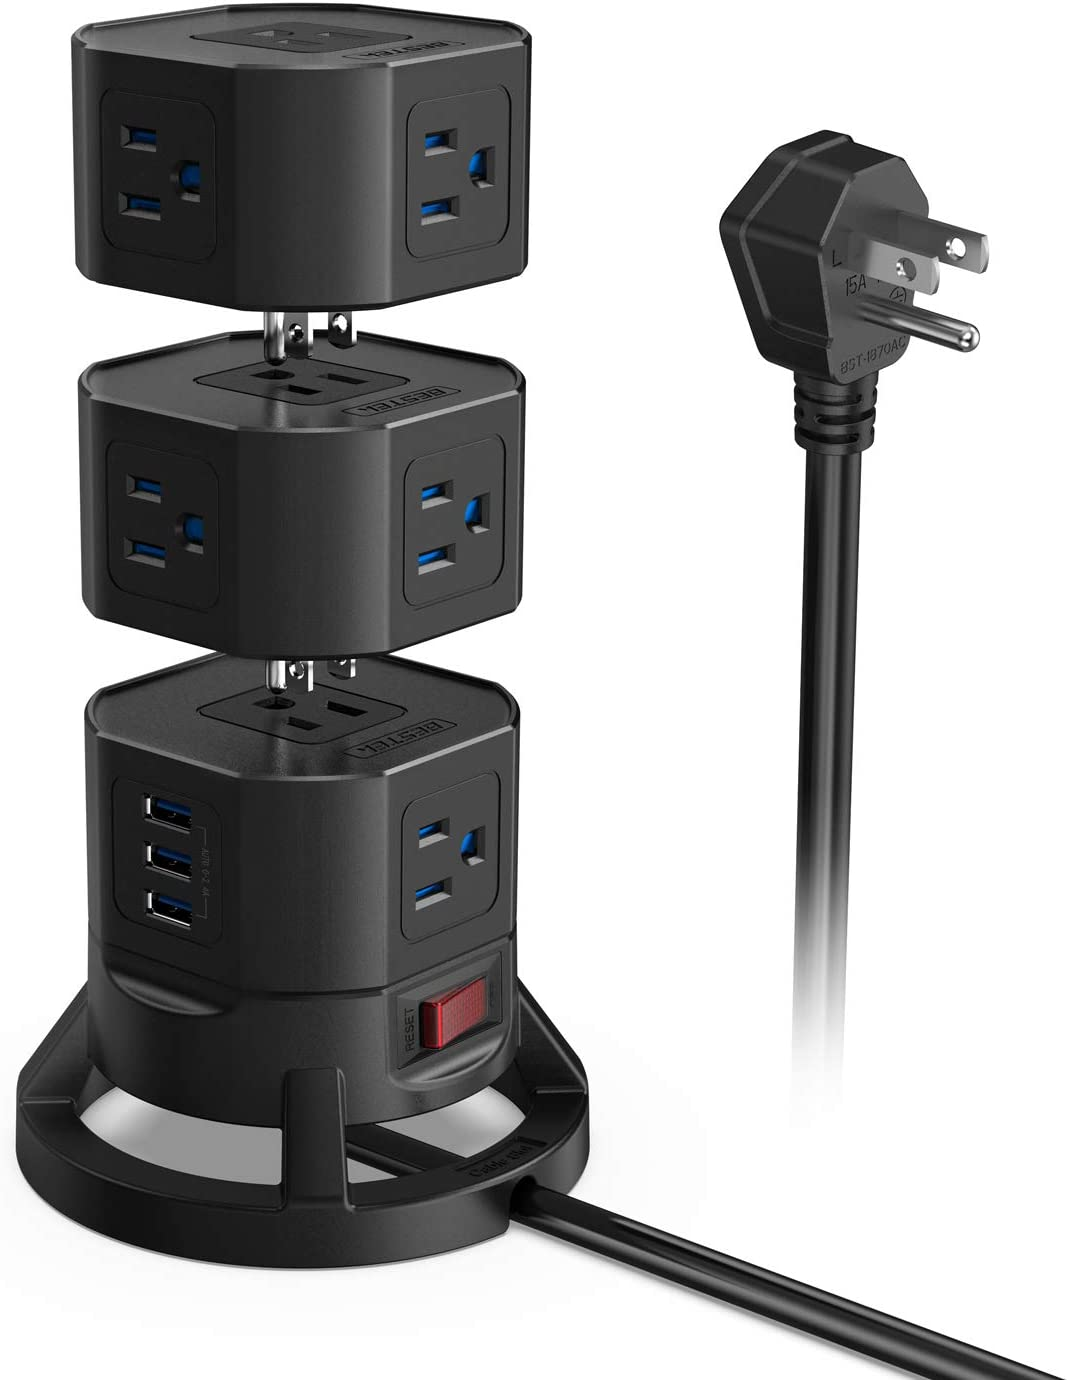 BESTEK 12 Outlets Power Strip Tower with 3 USB Ports Stackable Design Extend to 14 AC Outlets for PC Laptop Mobiles,6 Feet Extension Cord,Black